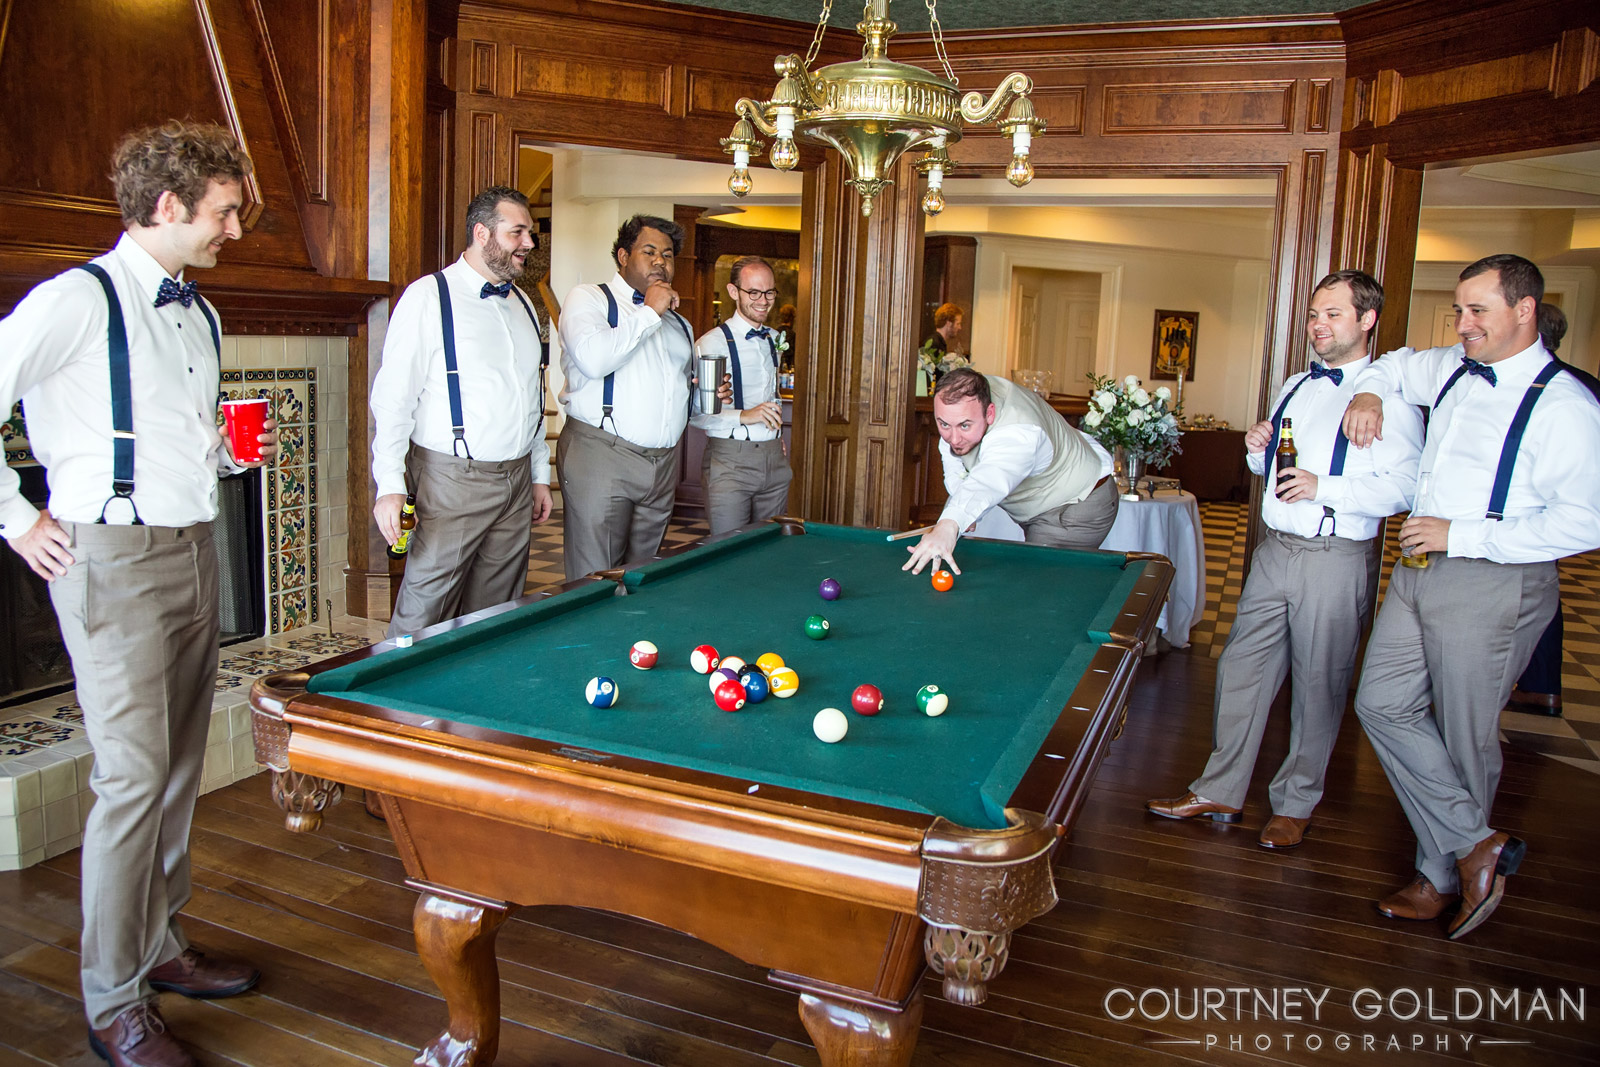 Atlanta-Wedding-Photography-by-Courtney-Goldman-26.jpg